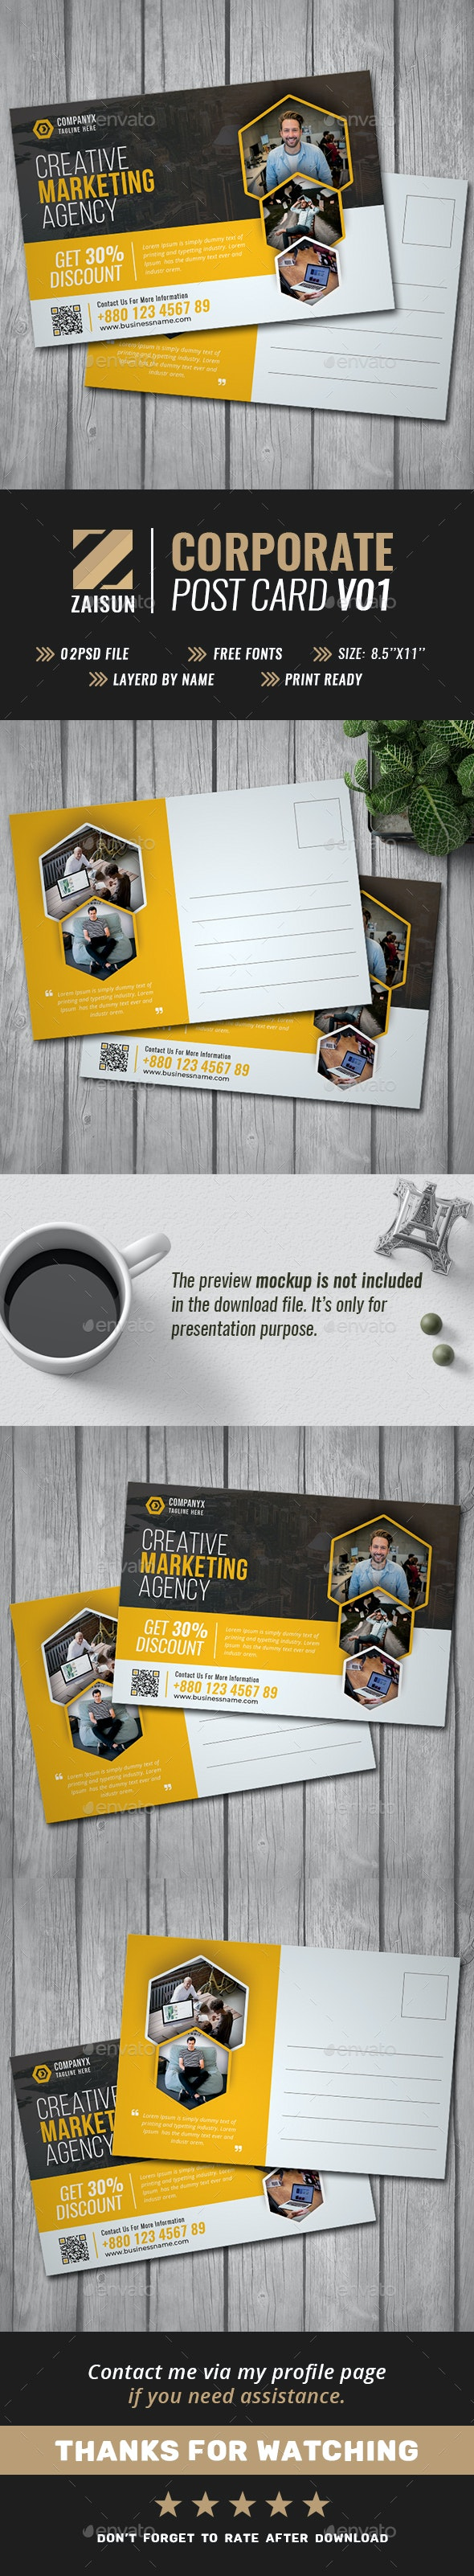 Business Post Card V01 - Cards & Invites Print Templates